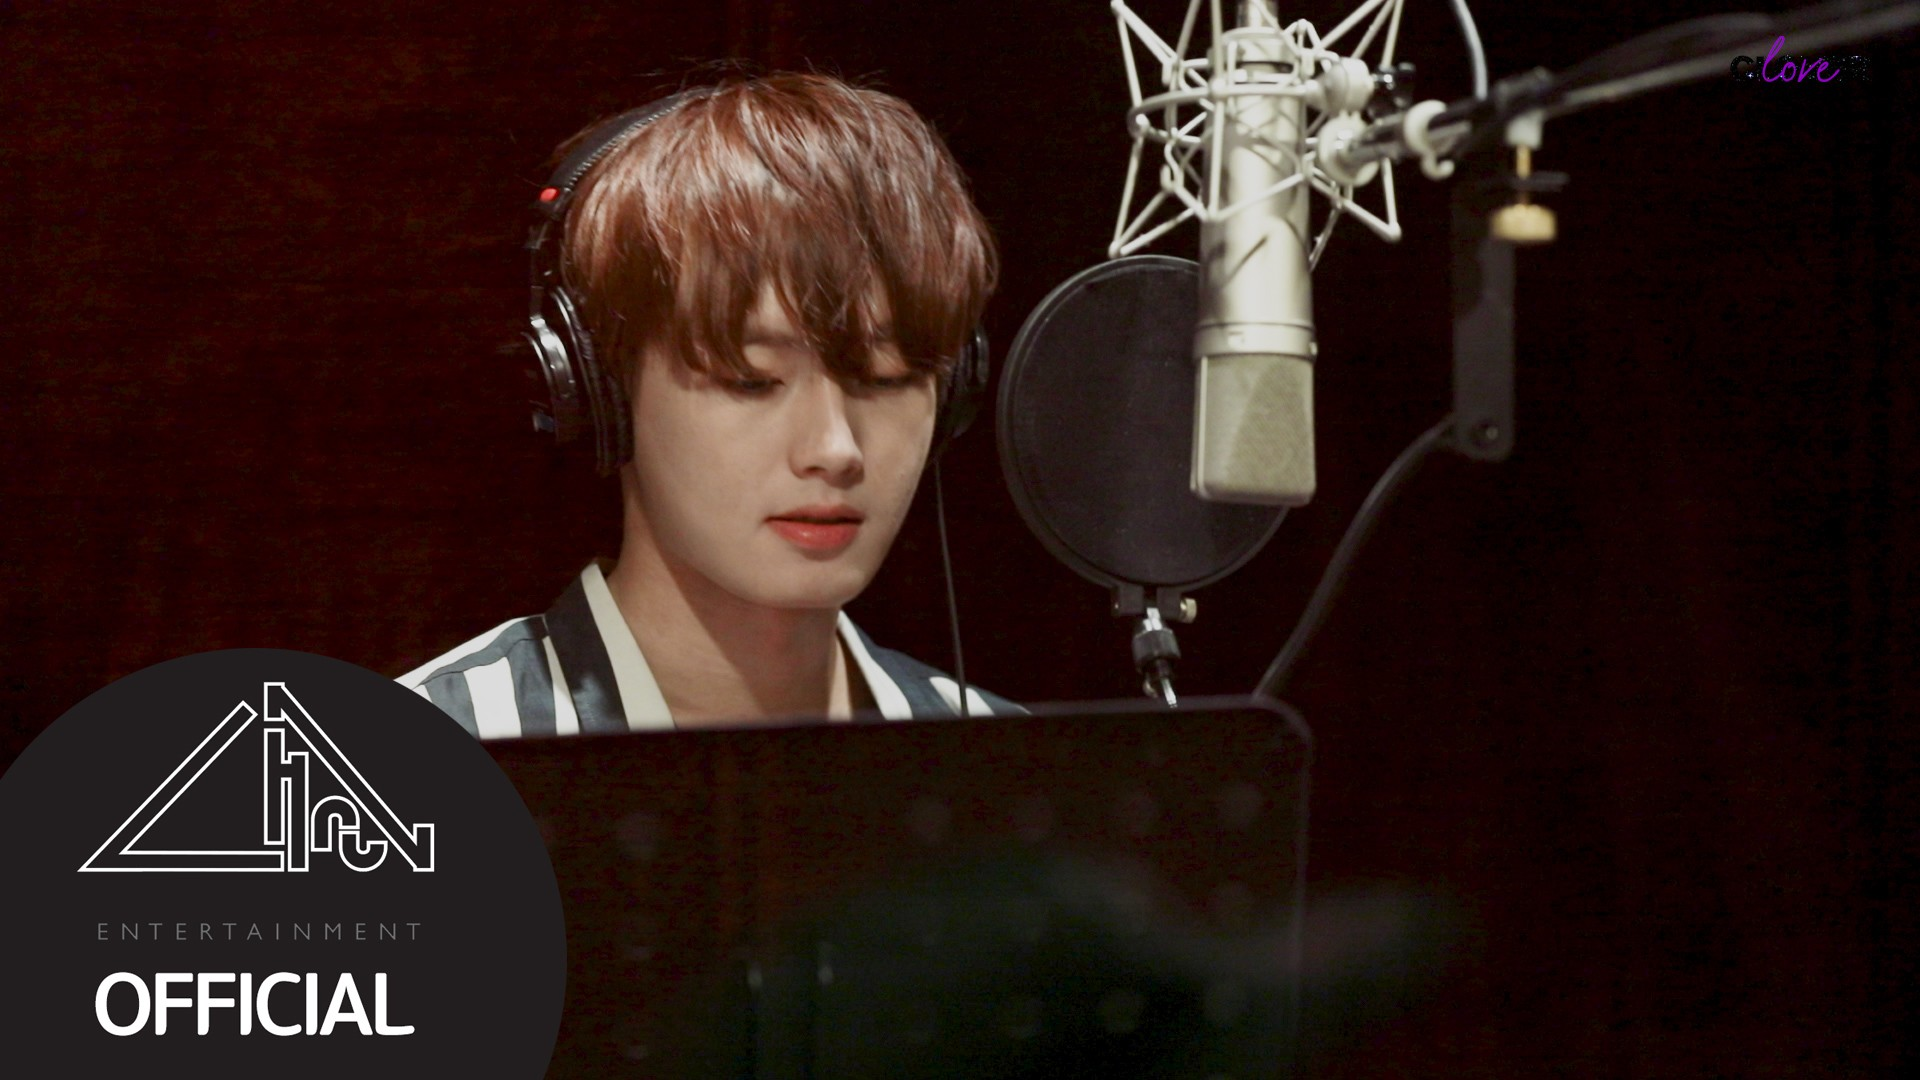 [BEHIND] 용국(LONGGUO) - CLOVER(Feat.윤미래) Recording Making